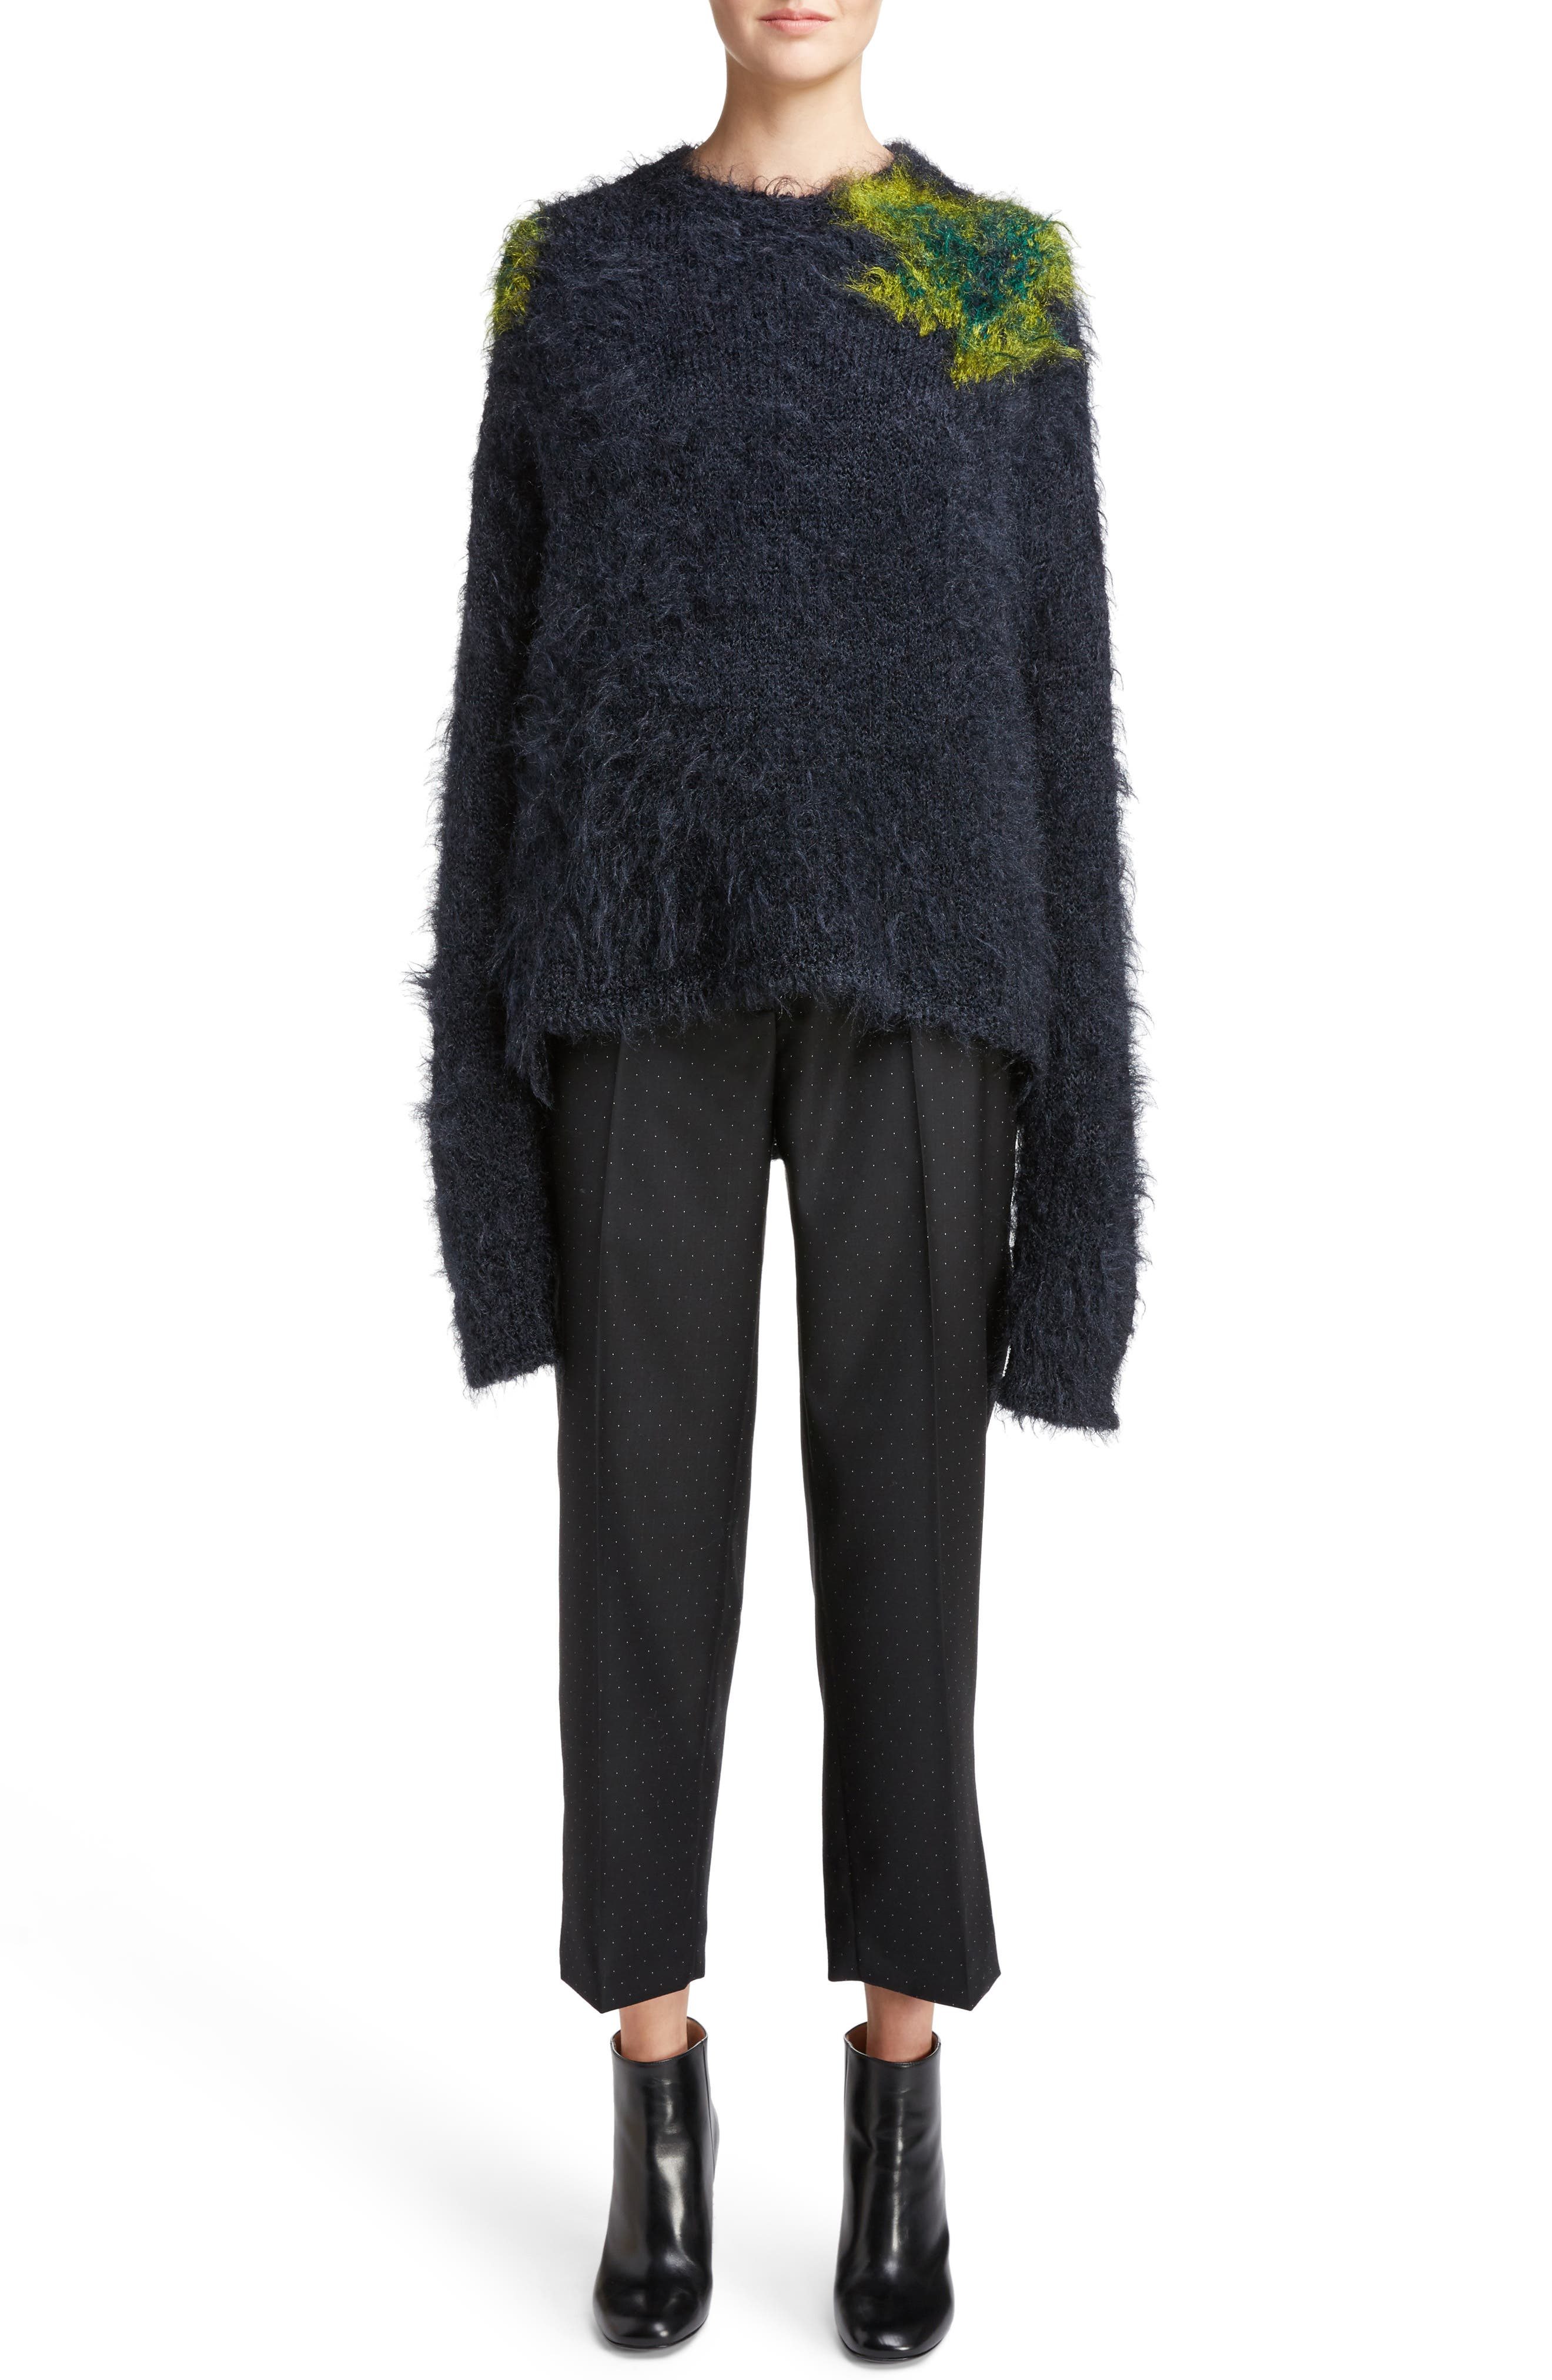 ACNE Studios Fhira Hairy Oversize Sweater